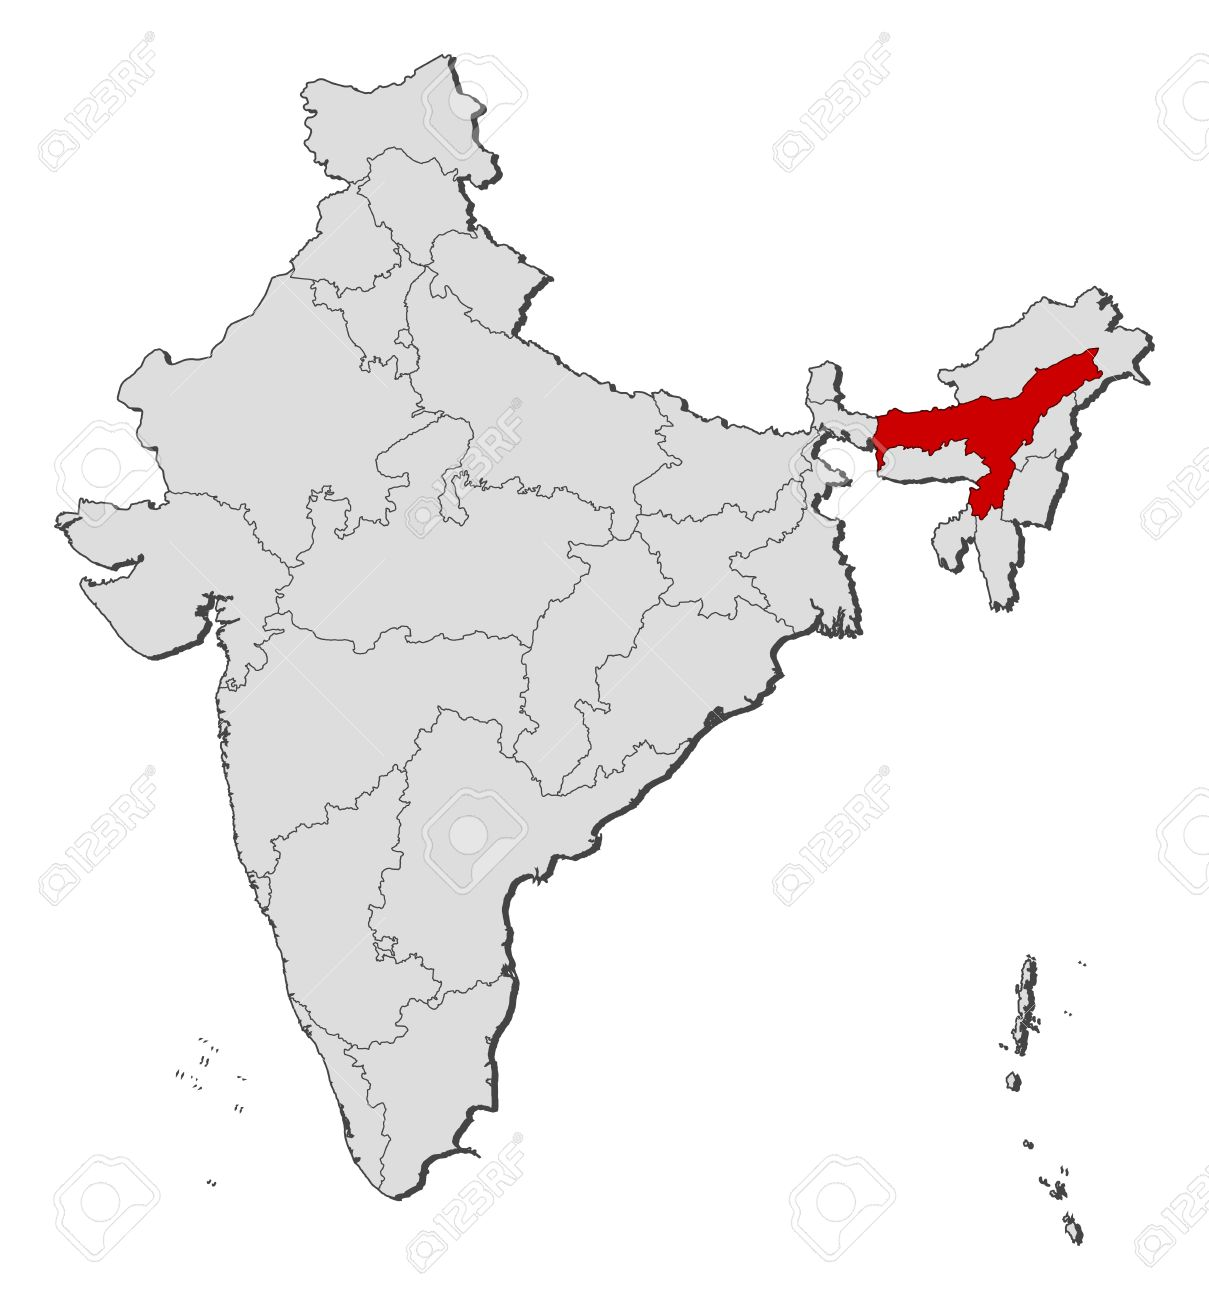 Political Map Of India With The Several States Where Assam Is